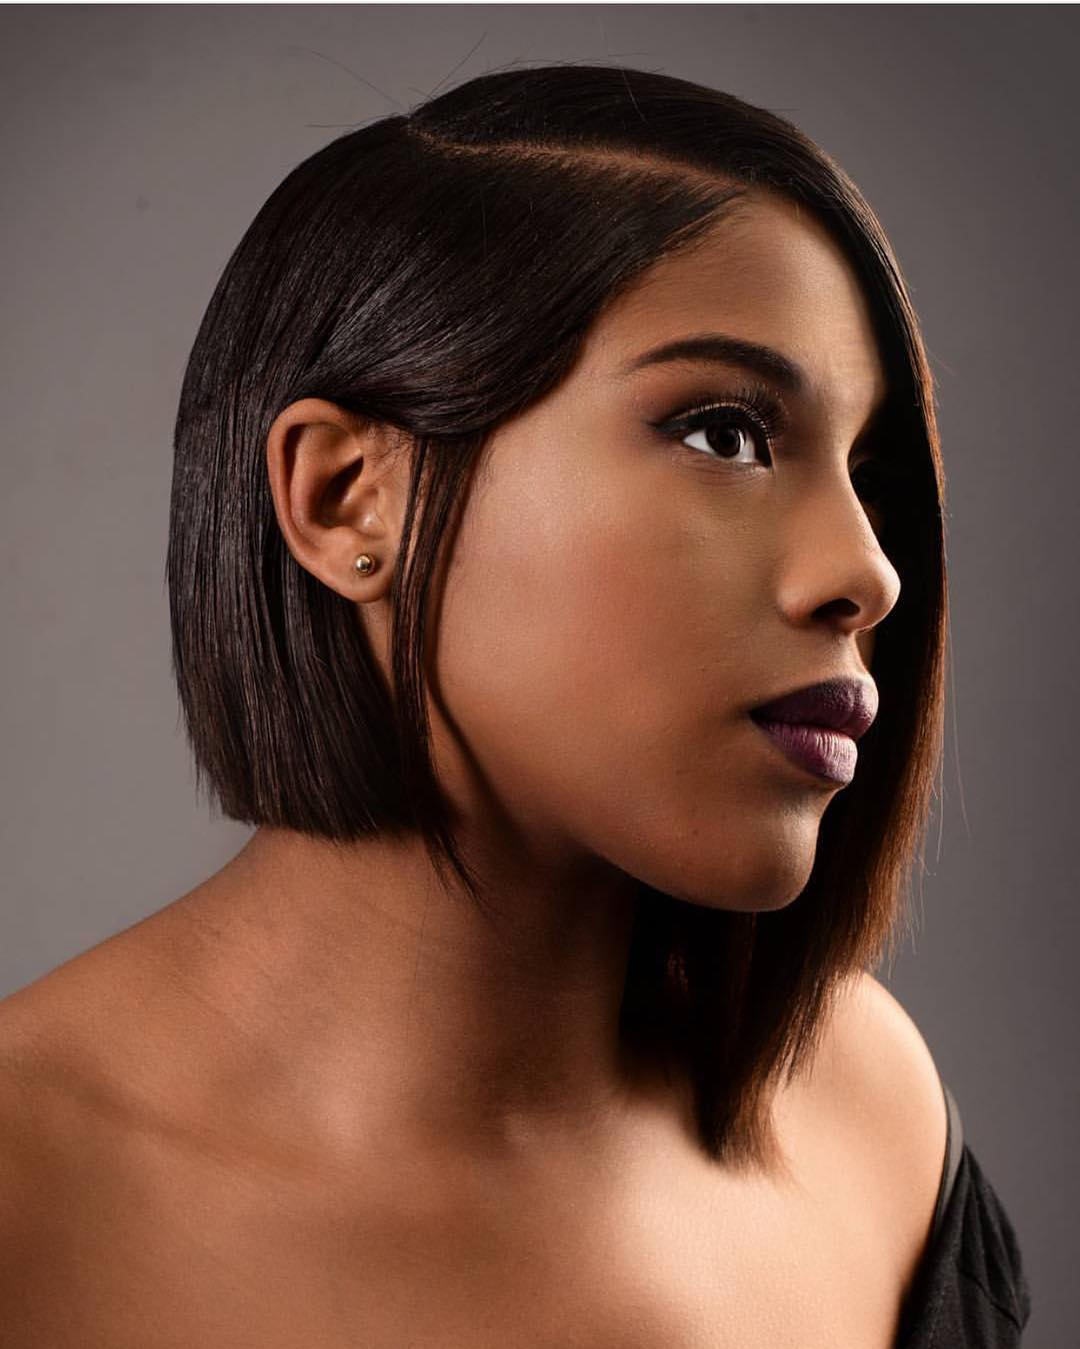 60 Elegant Long and Short Bob Hairstyles for Black Women